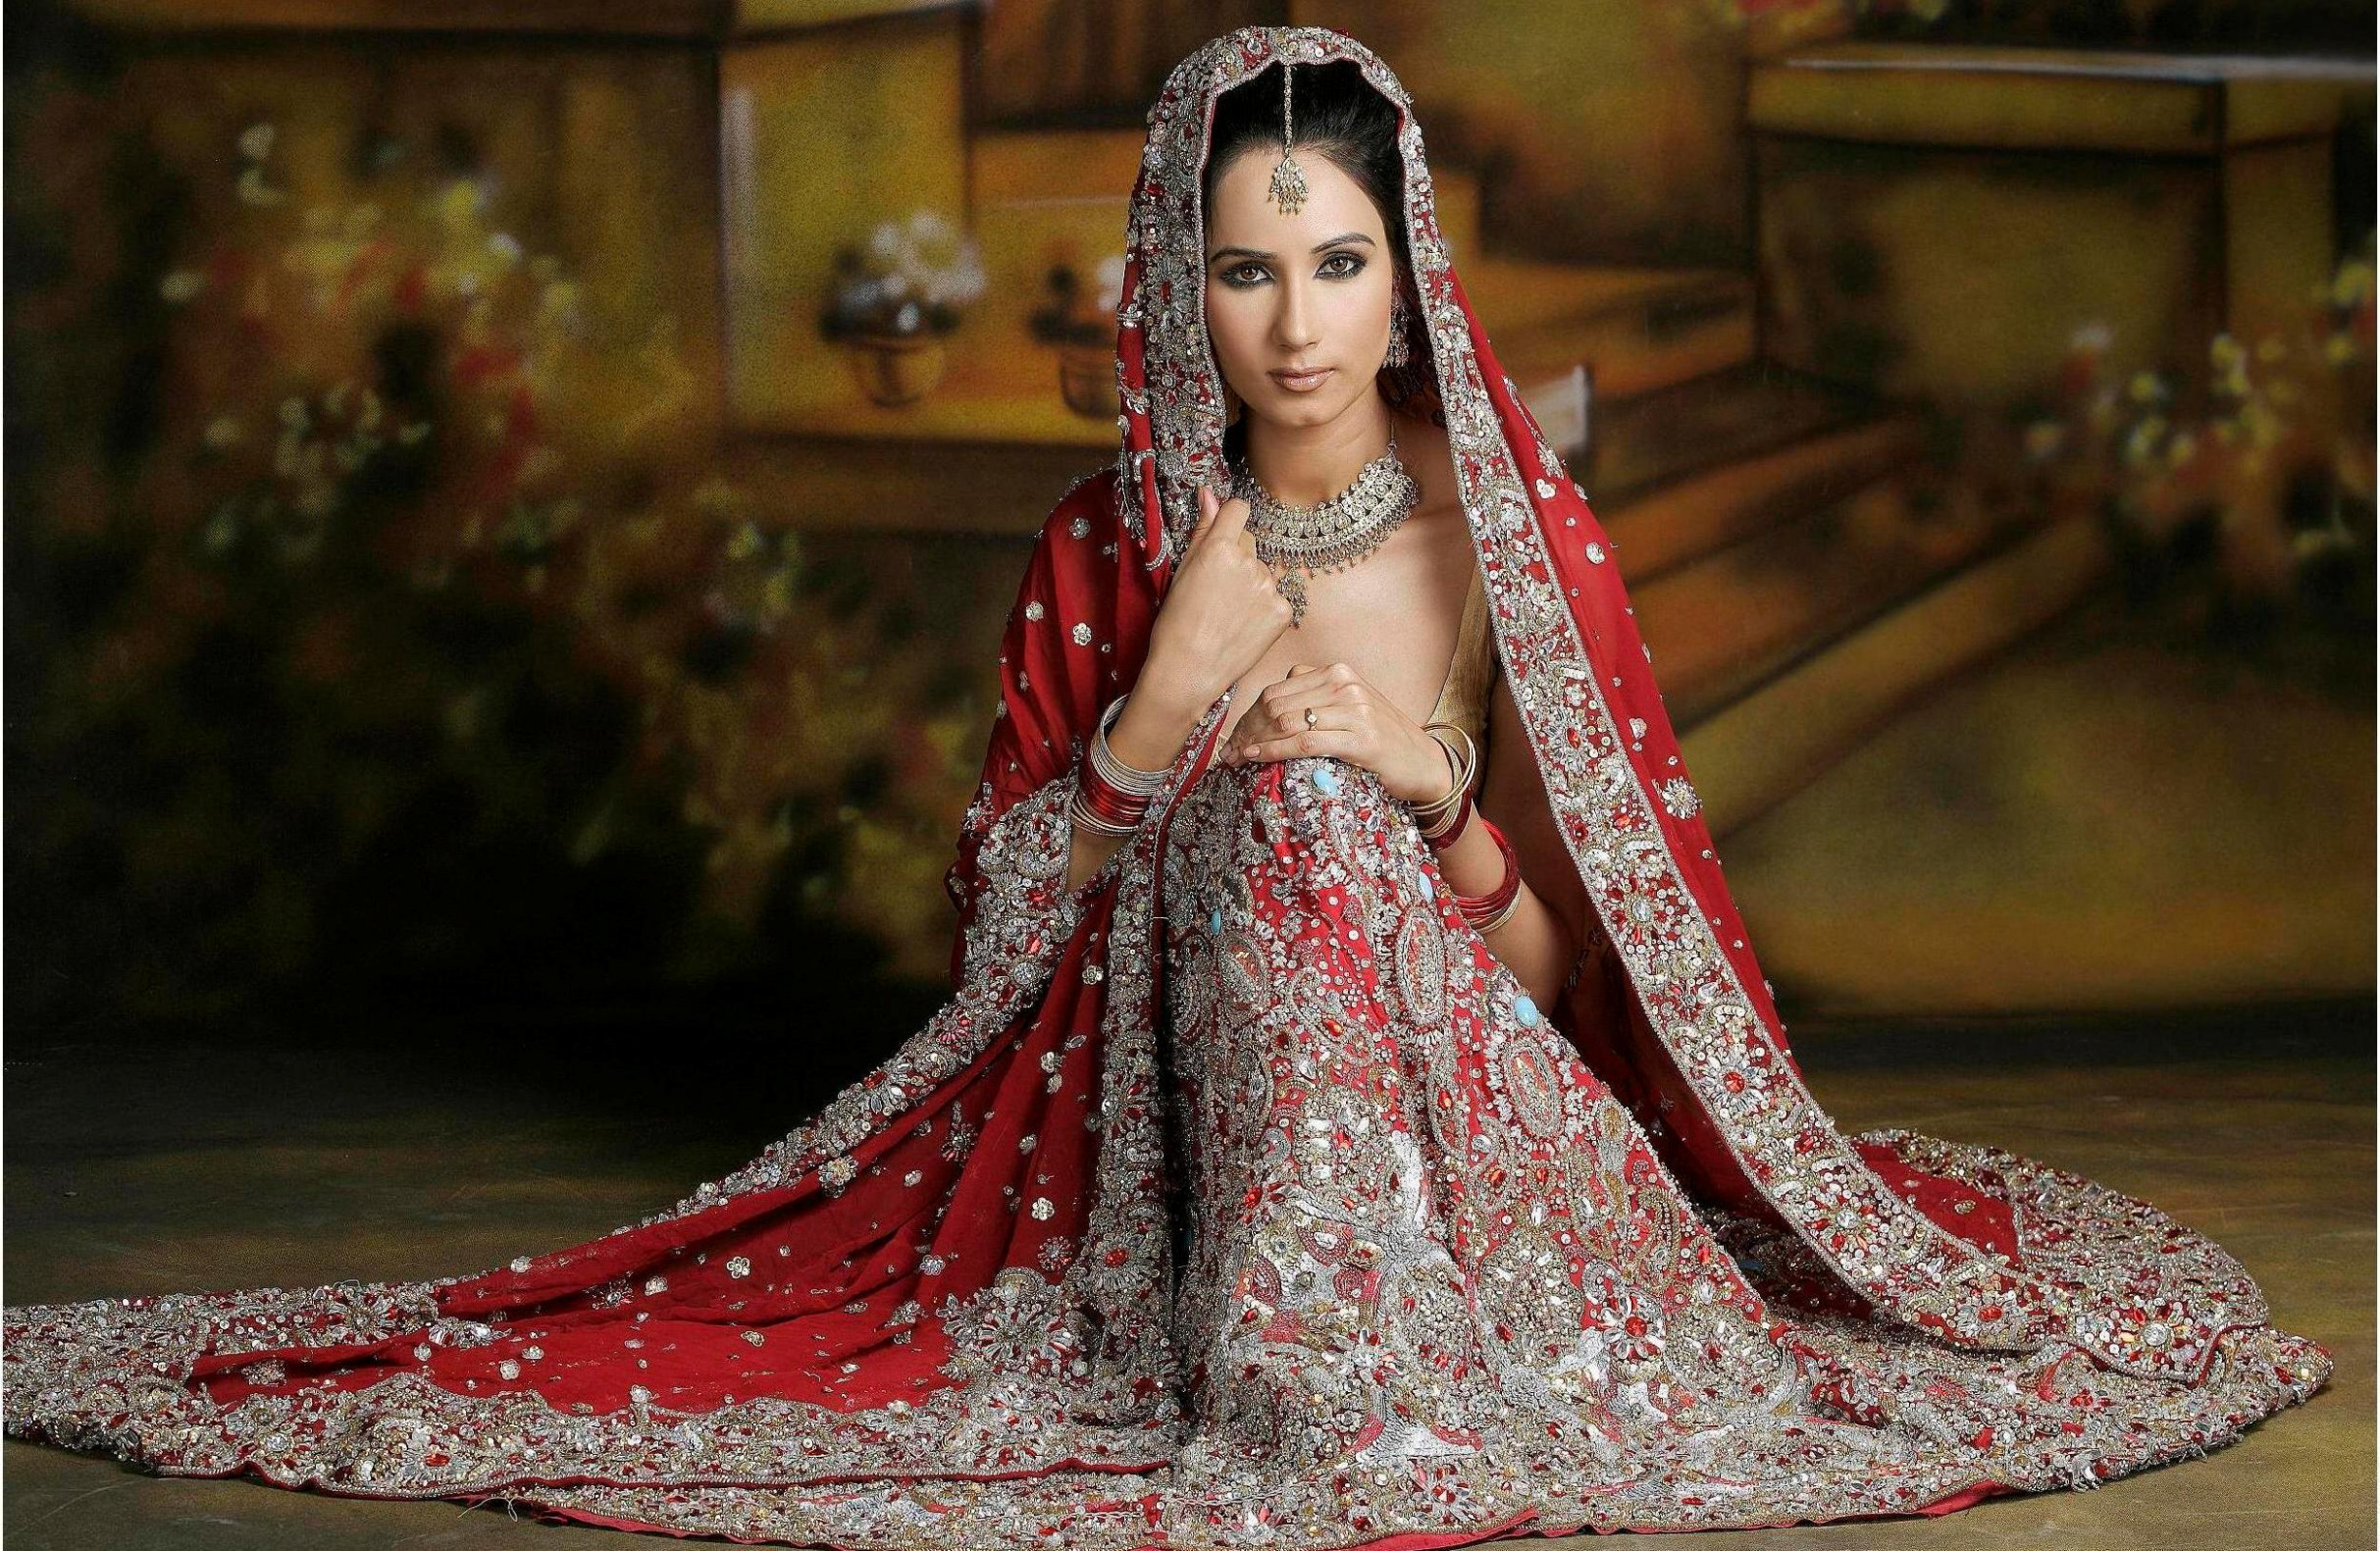 Indian Bride Dress Idea And Inspiration